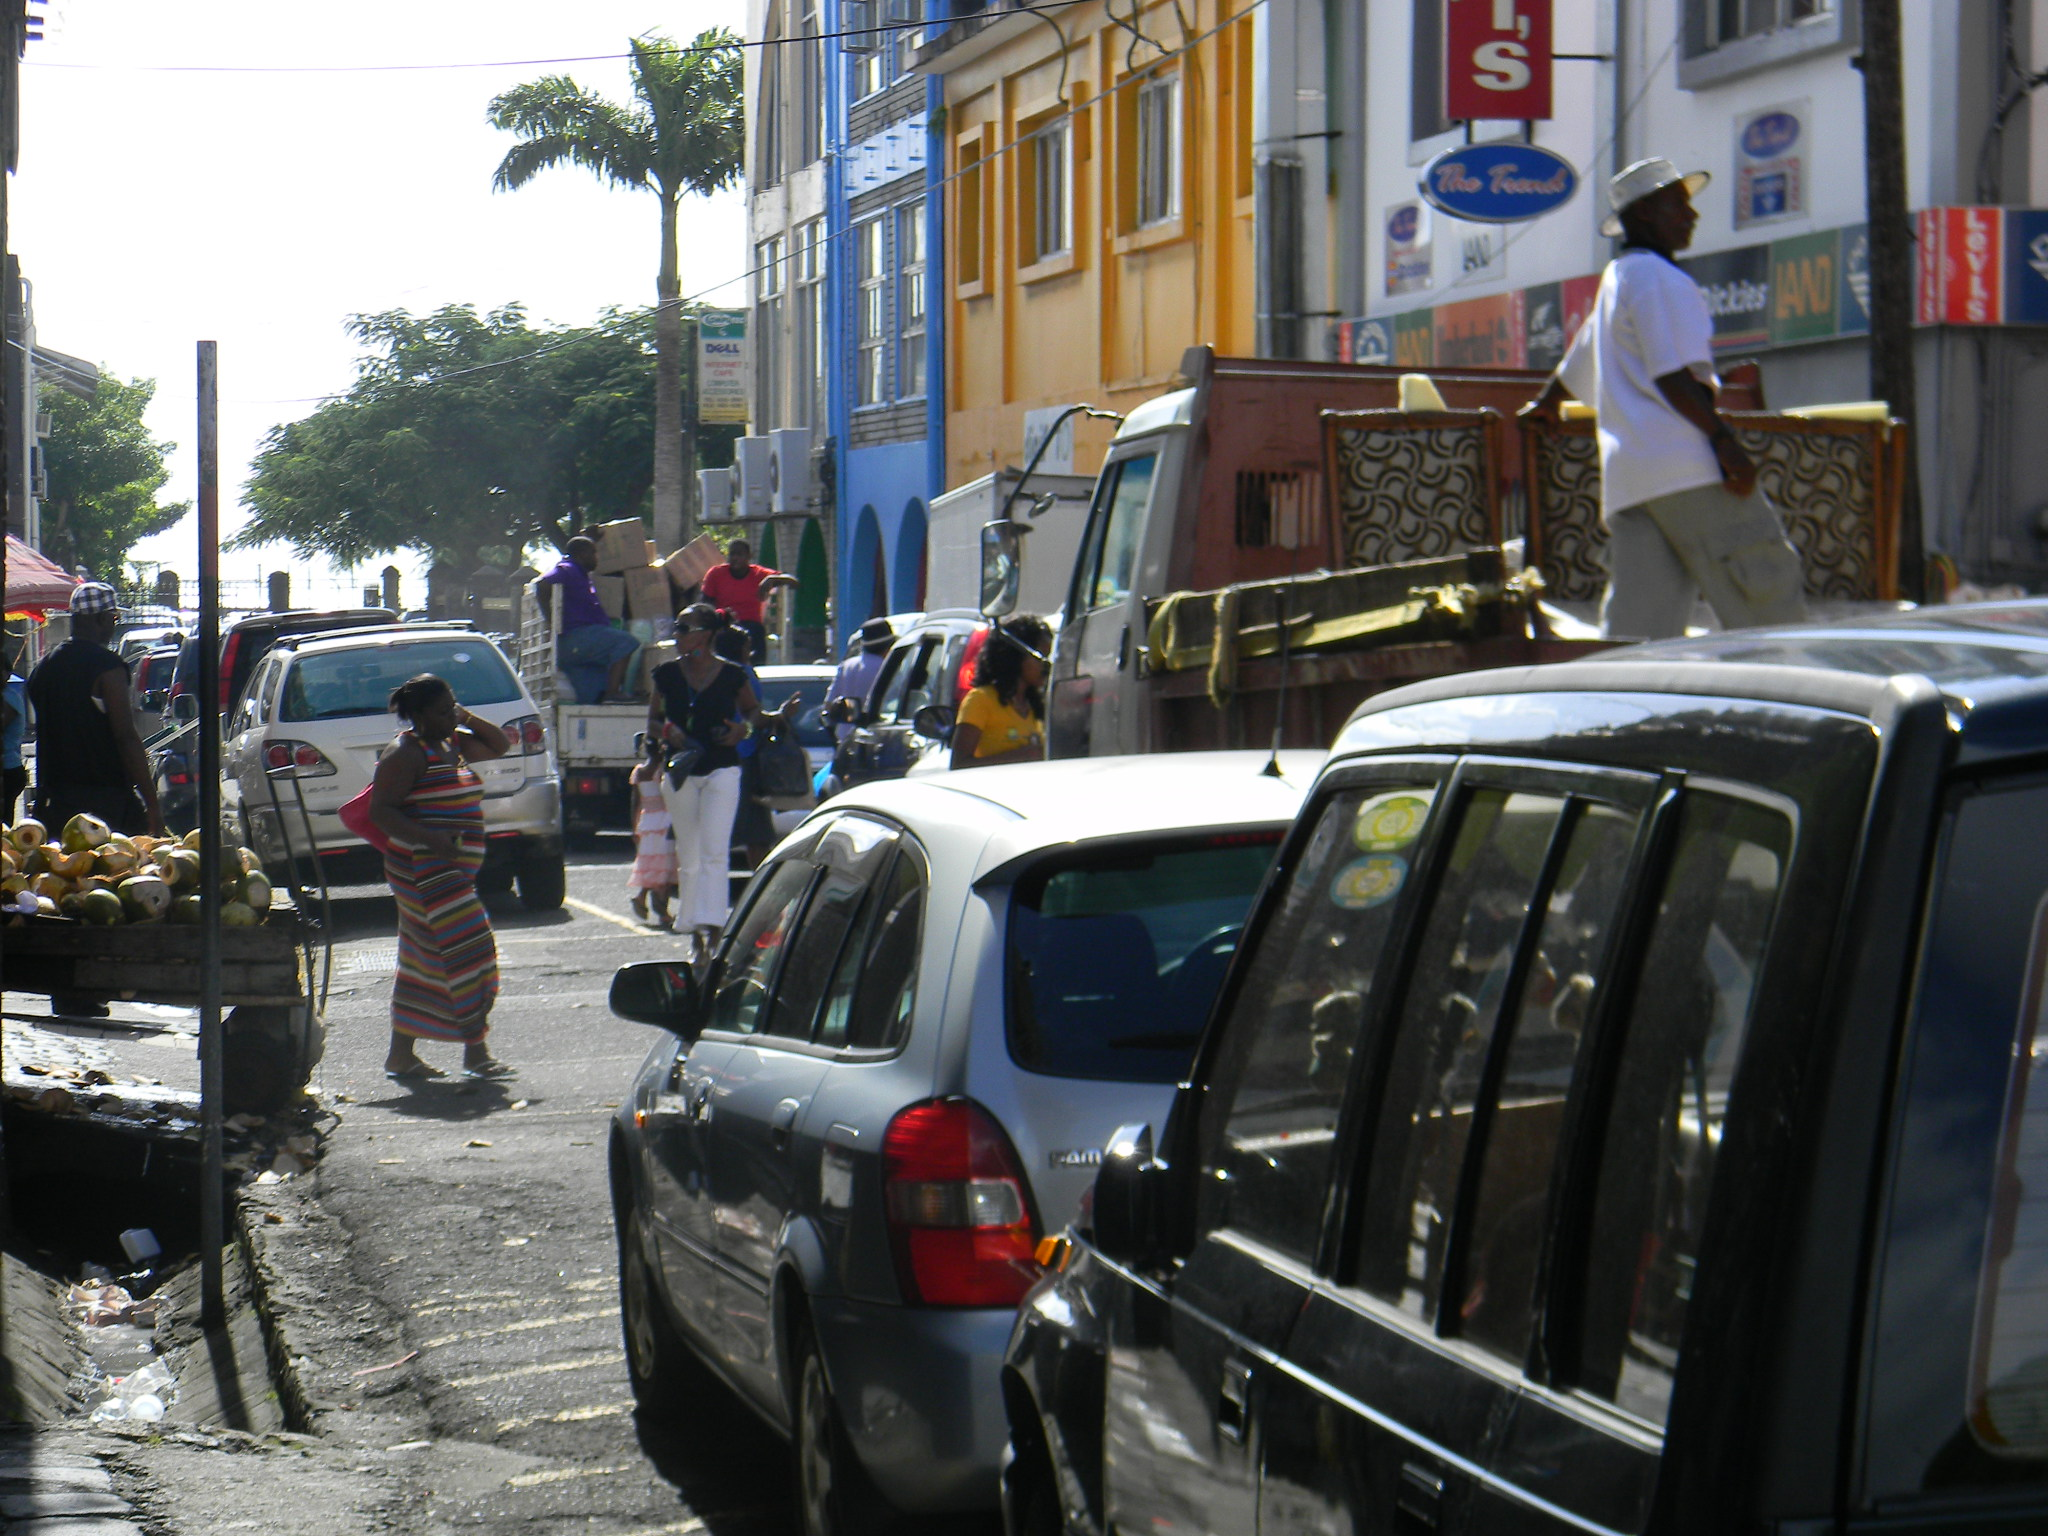 busy traffic in Kingstown on the last Friday before christmas